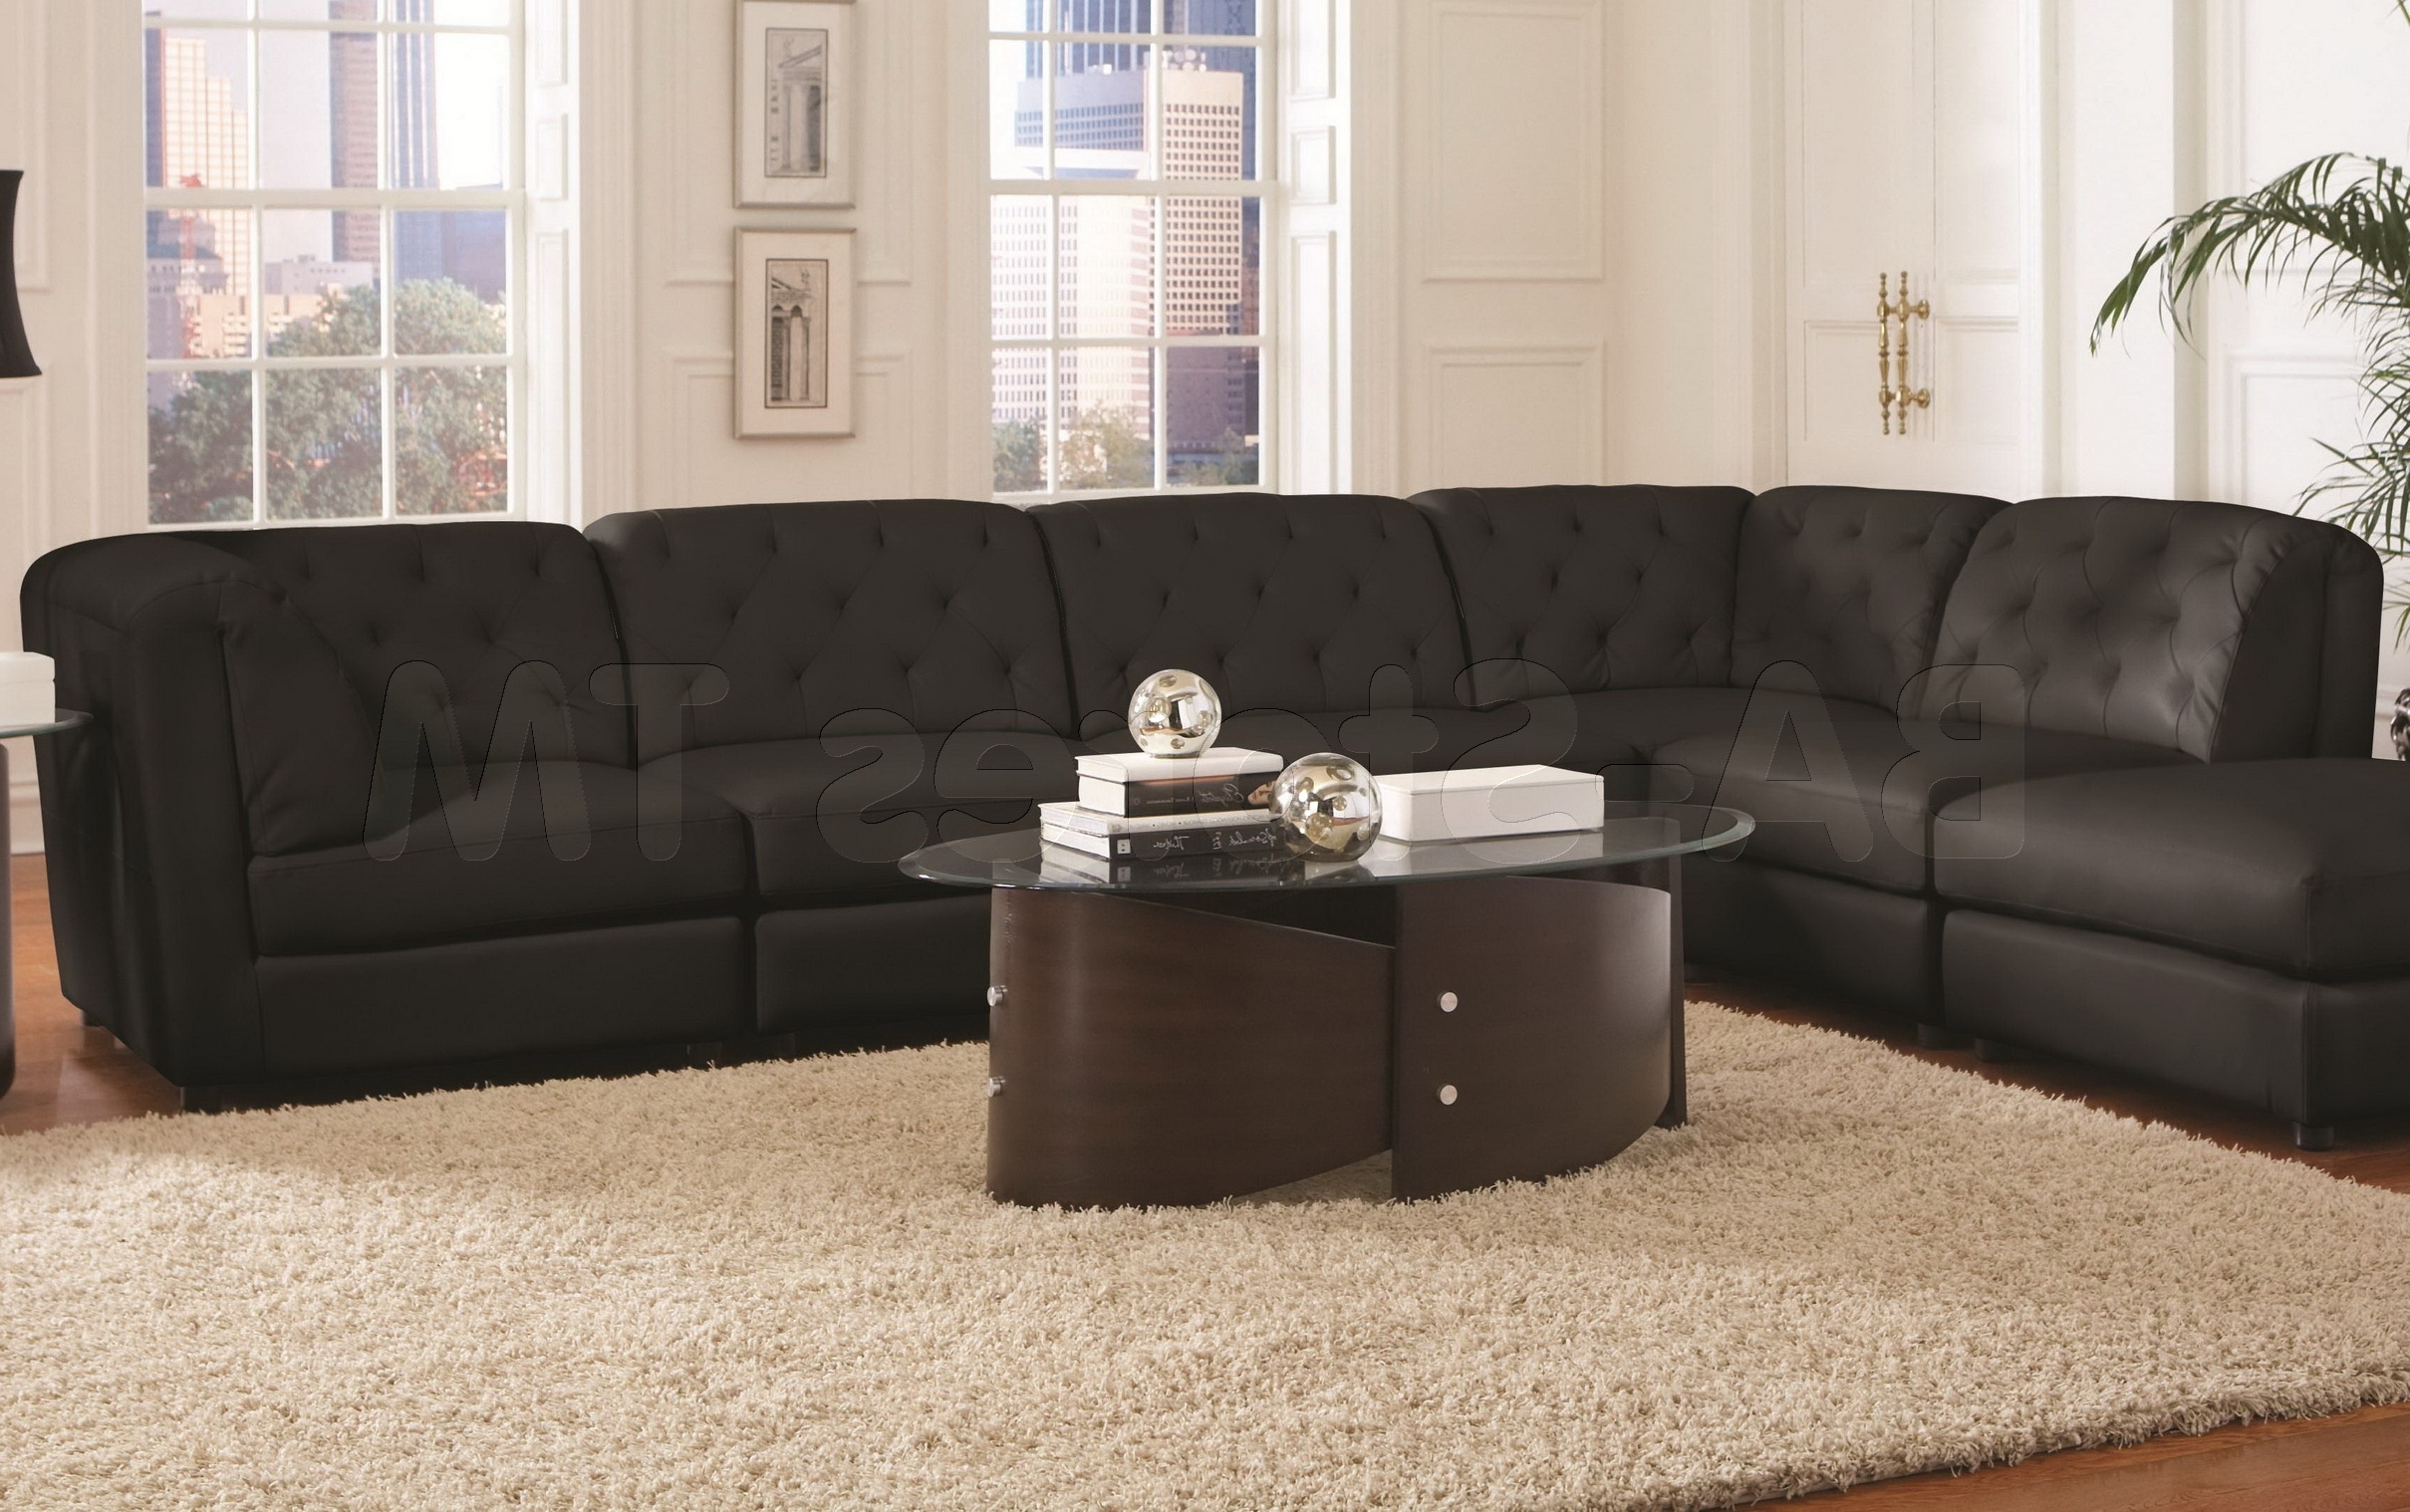 Wide Seat Sectional Sofas In Popular Couch (View 14 of 15)